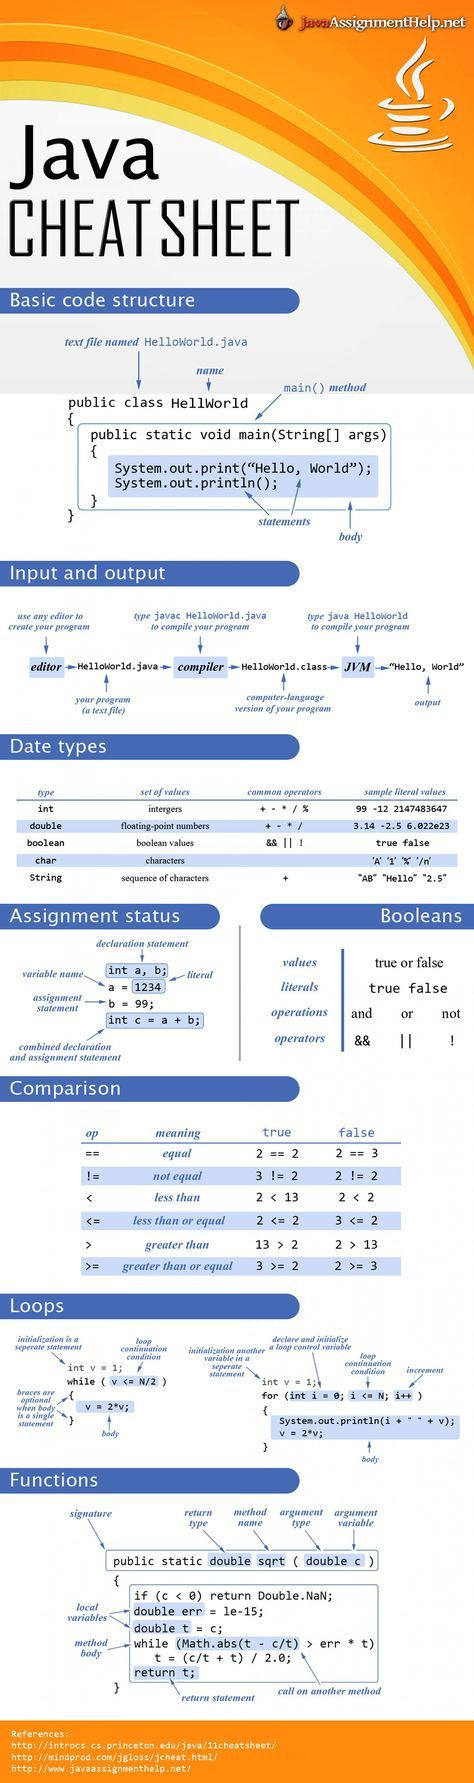 Java Cheat Sheet For Programmers Infographic #code #coding #programmers